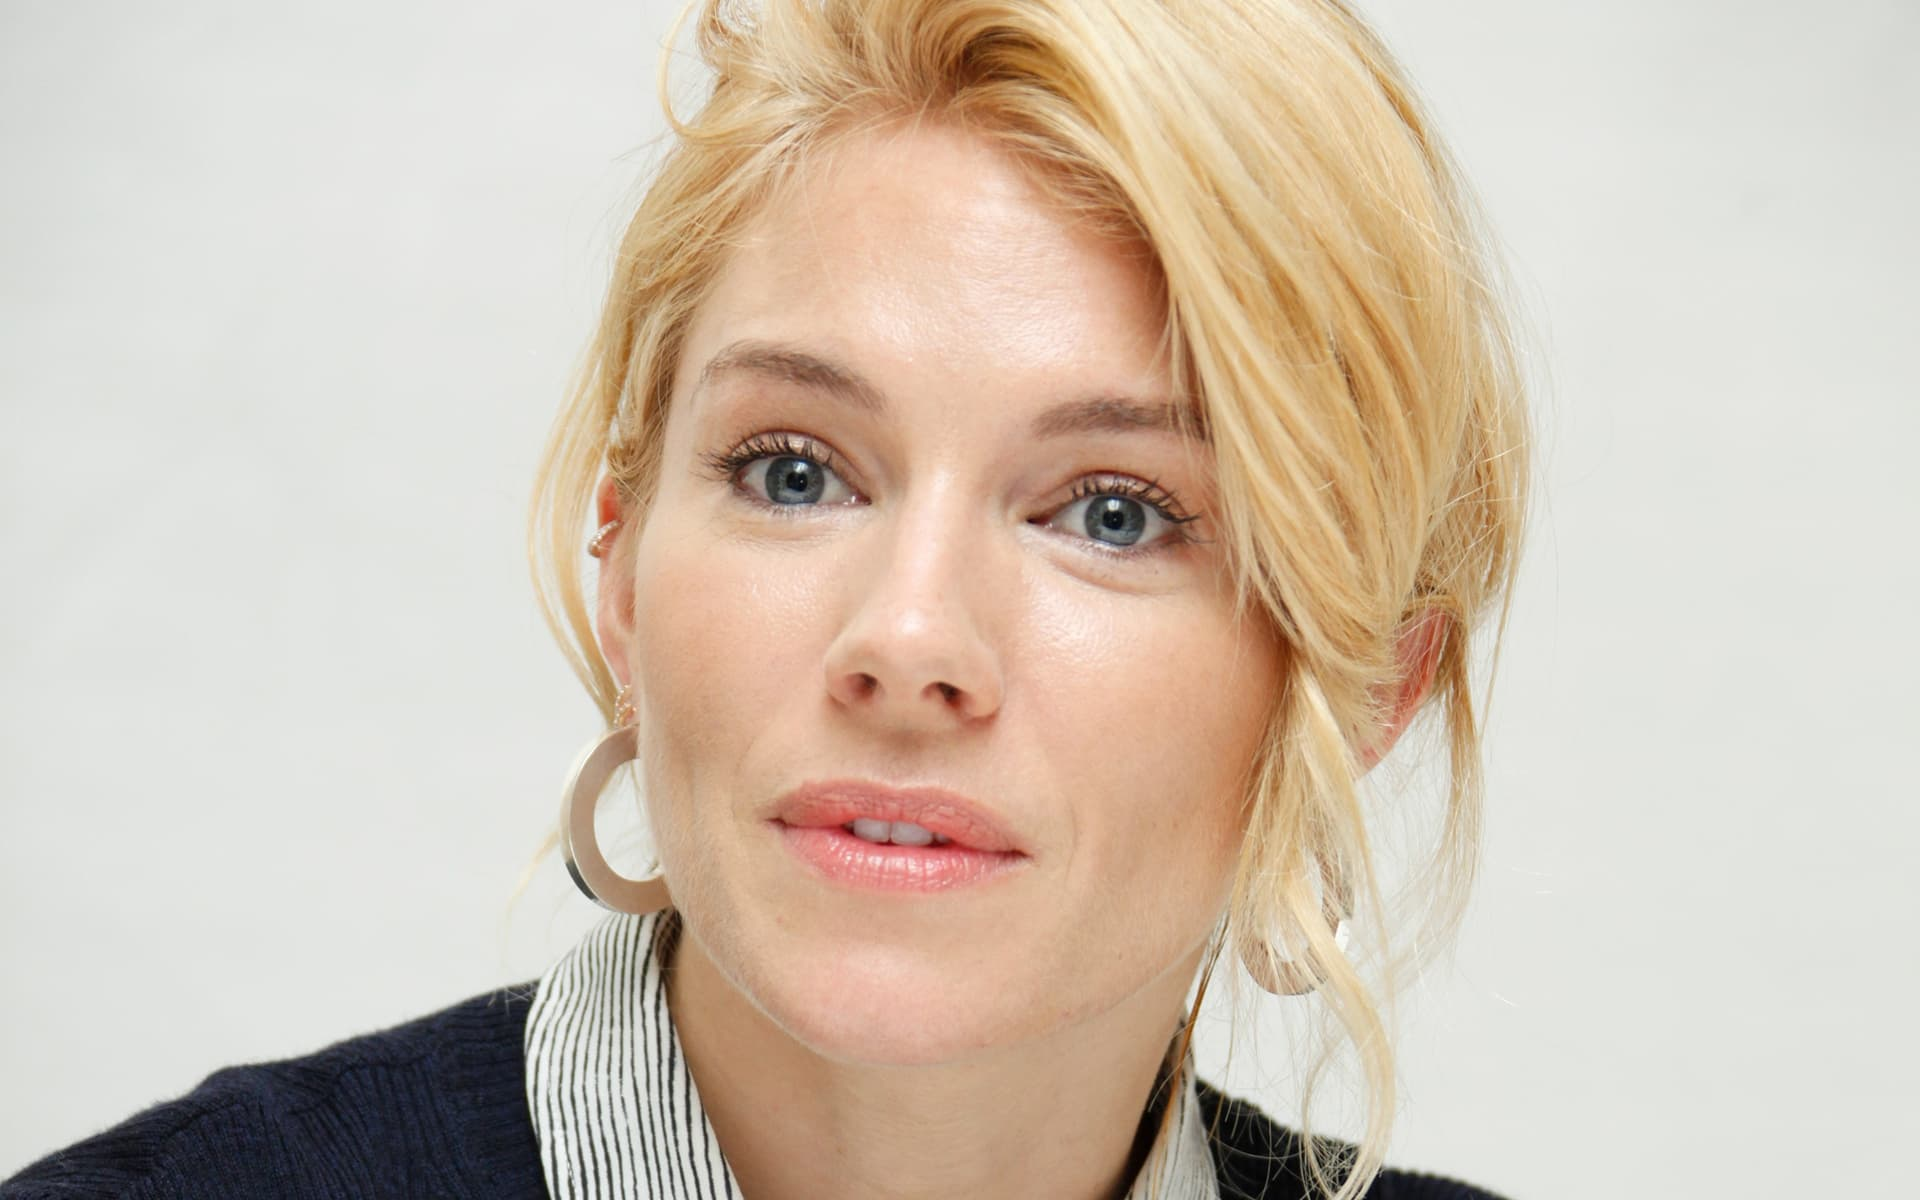 Face Sienna Miller Hd Wallpaper on Hd Technology For Cars